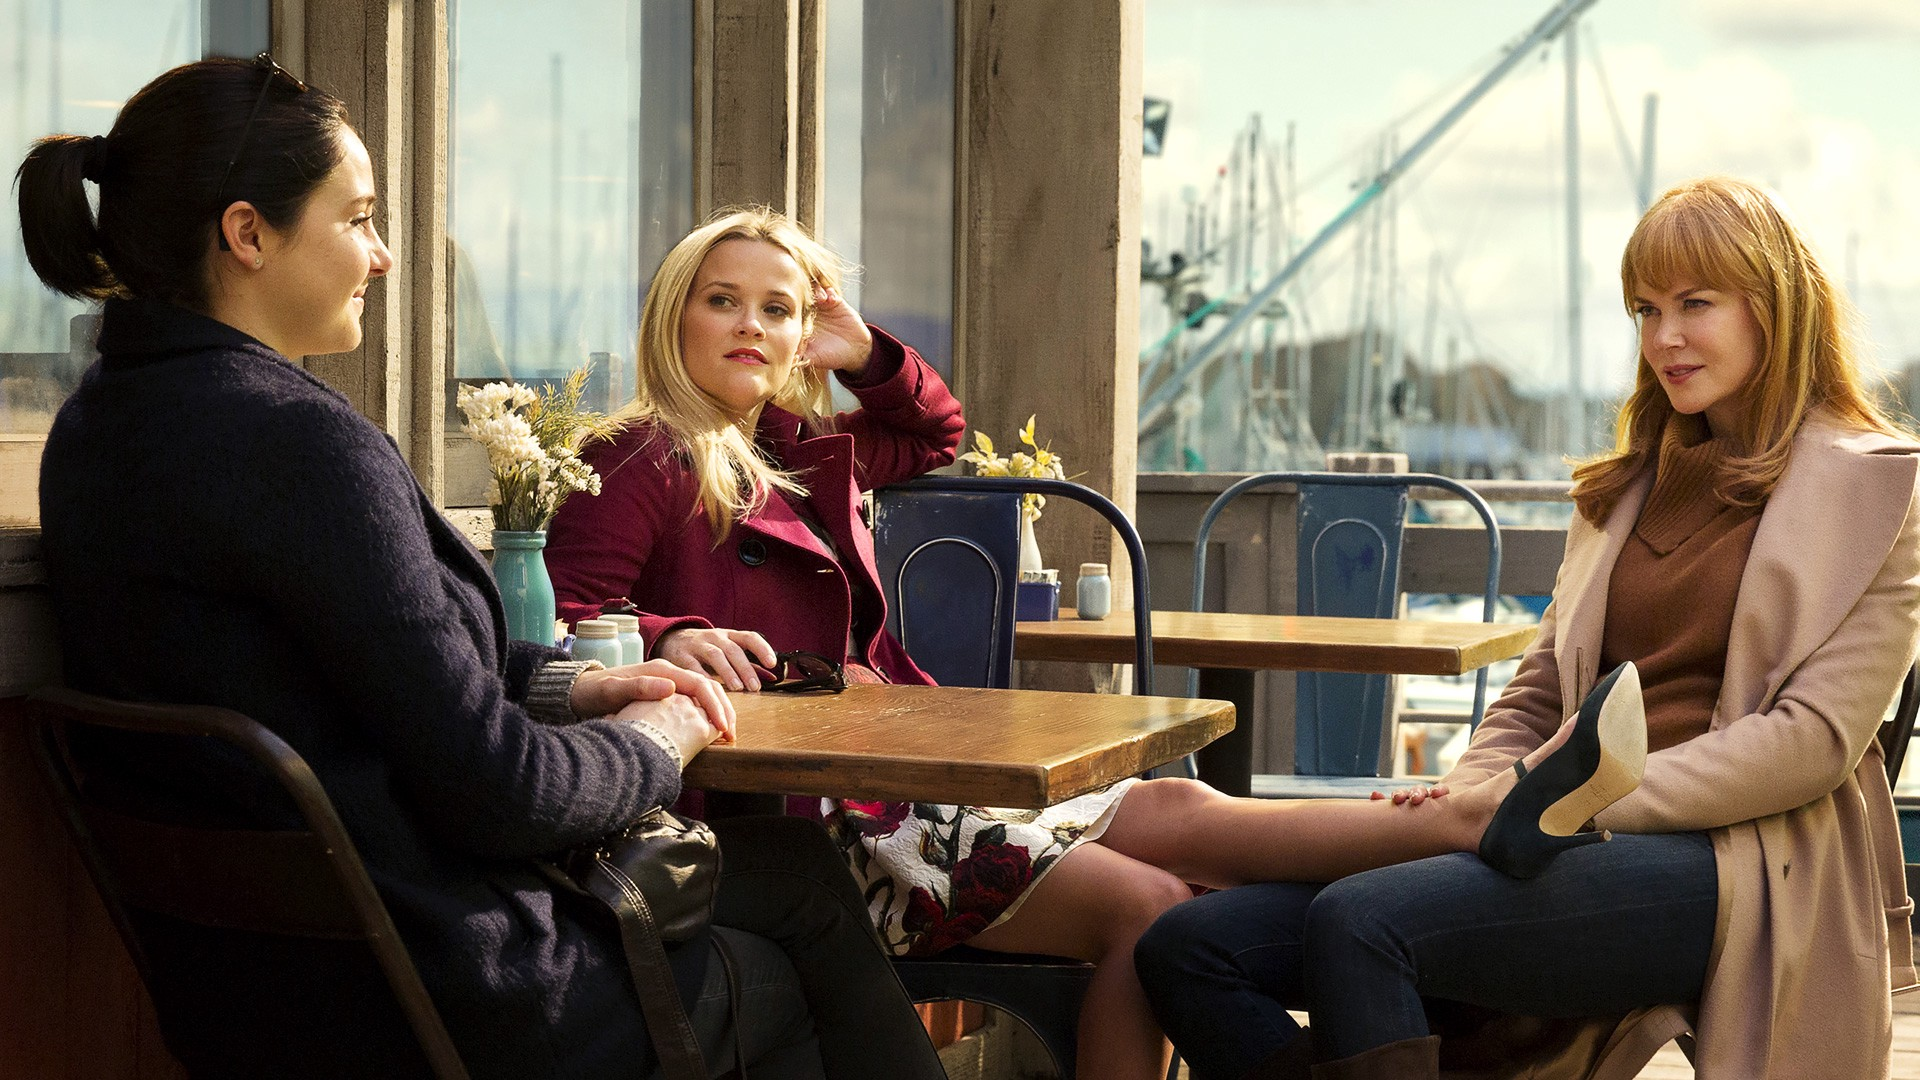 Shailene Woodley, Reese Witherspoon and Nicole Kidman in 'Big Little Lies' (2017)